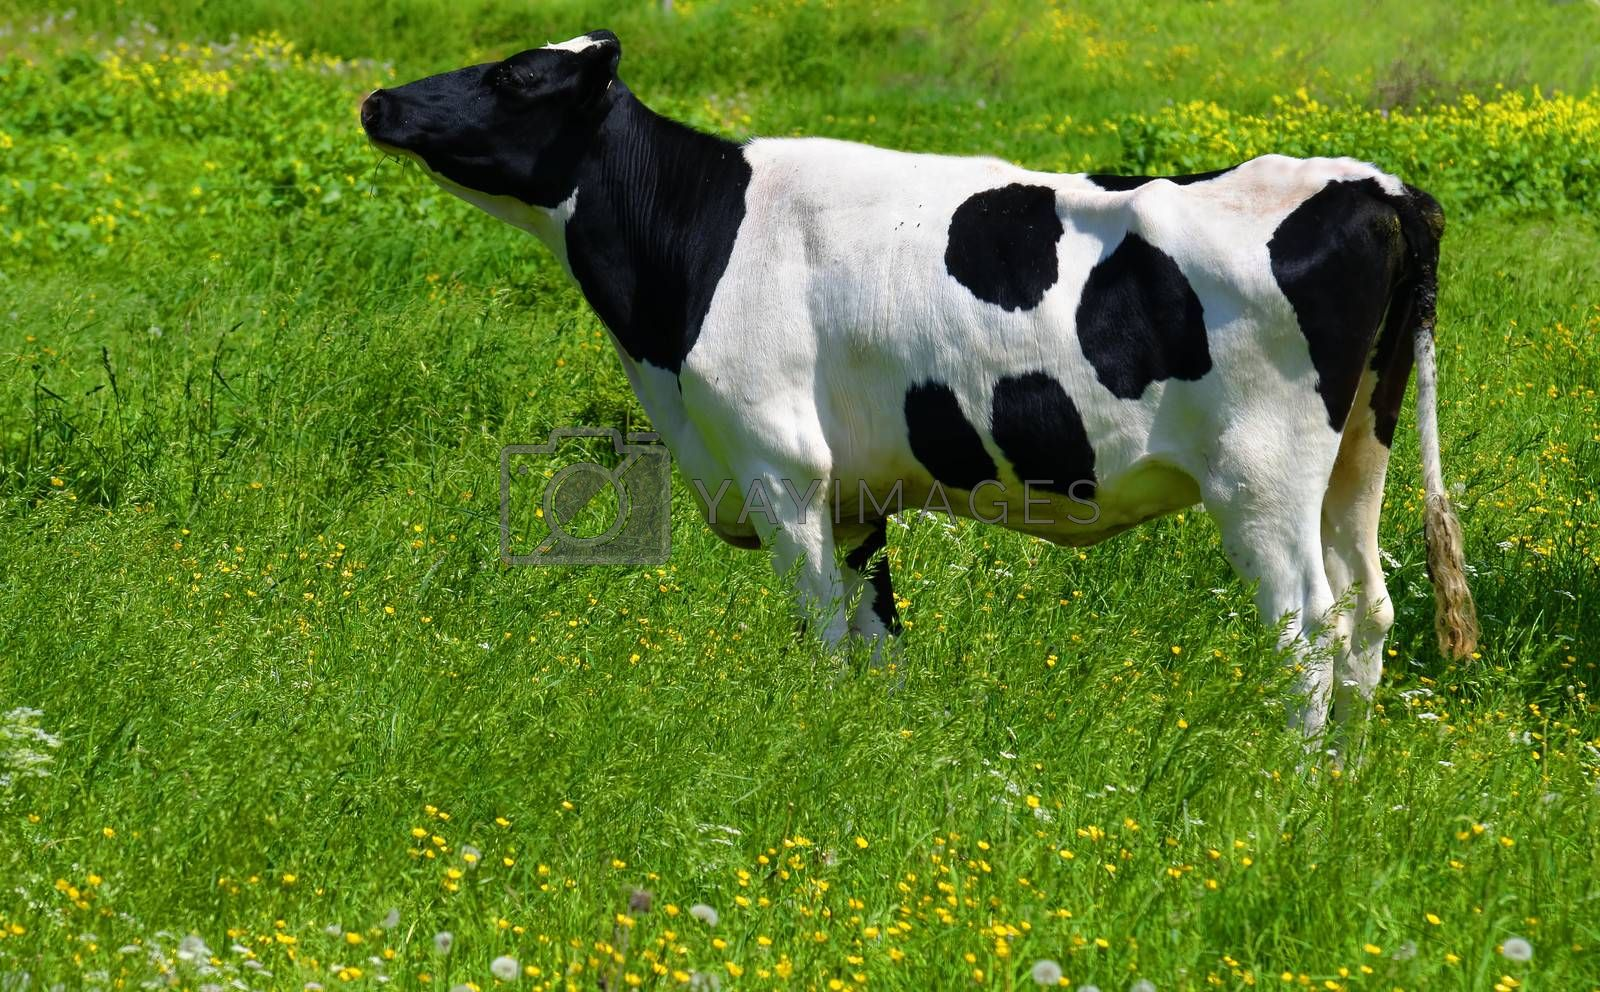 a cow in a green meadow